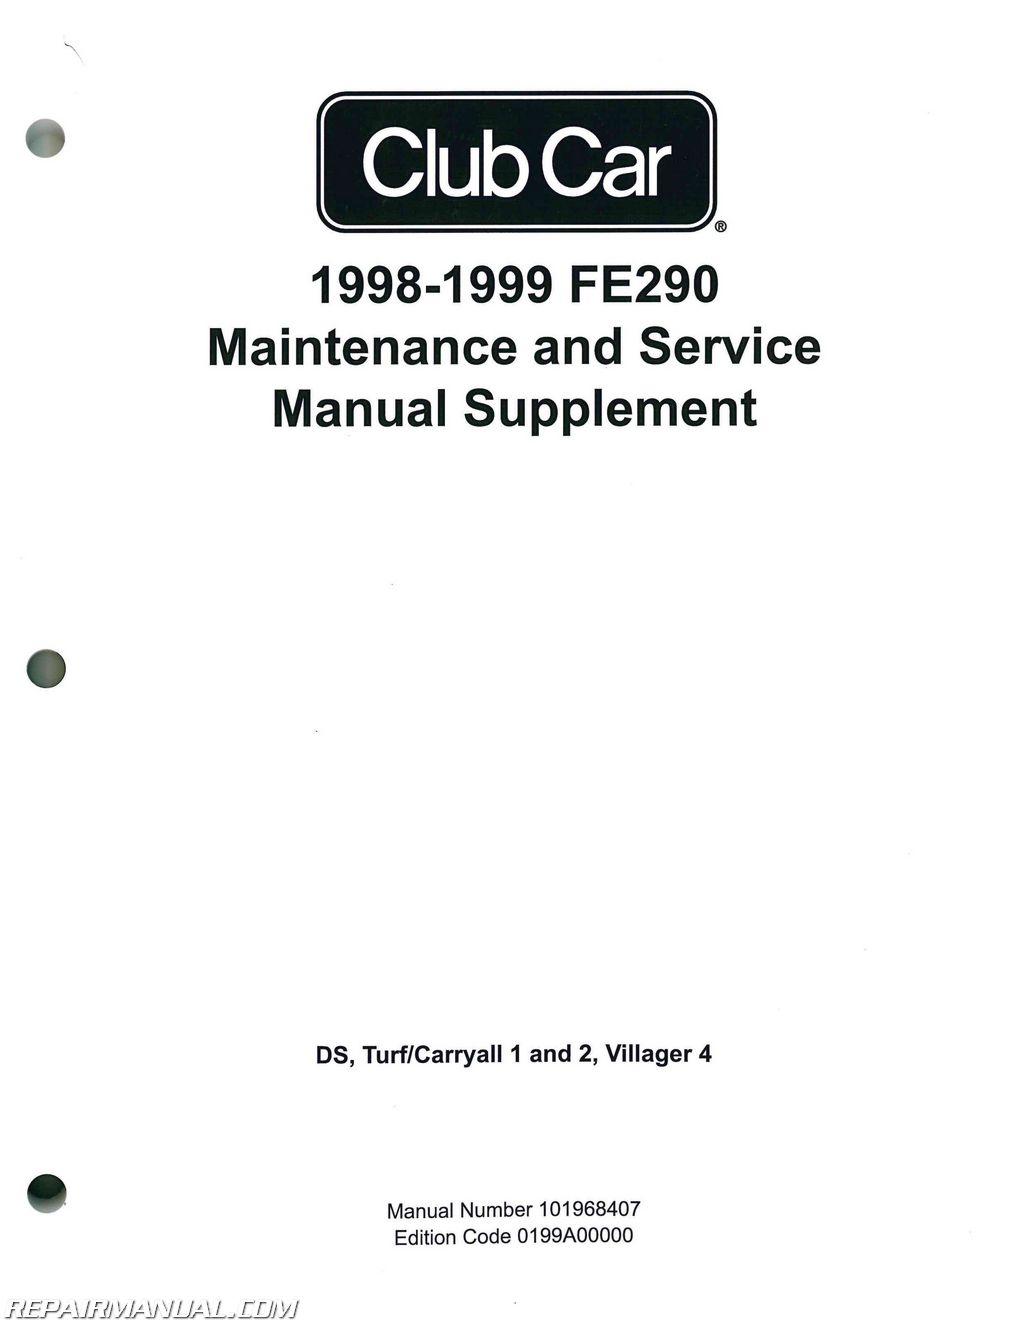 Club Car 1998 Maintenance And Service Manual Supplement